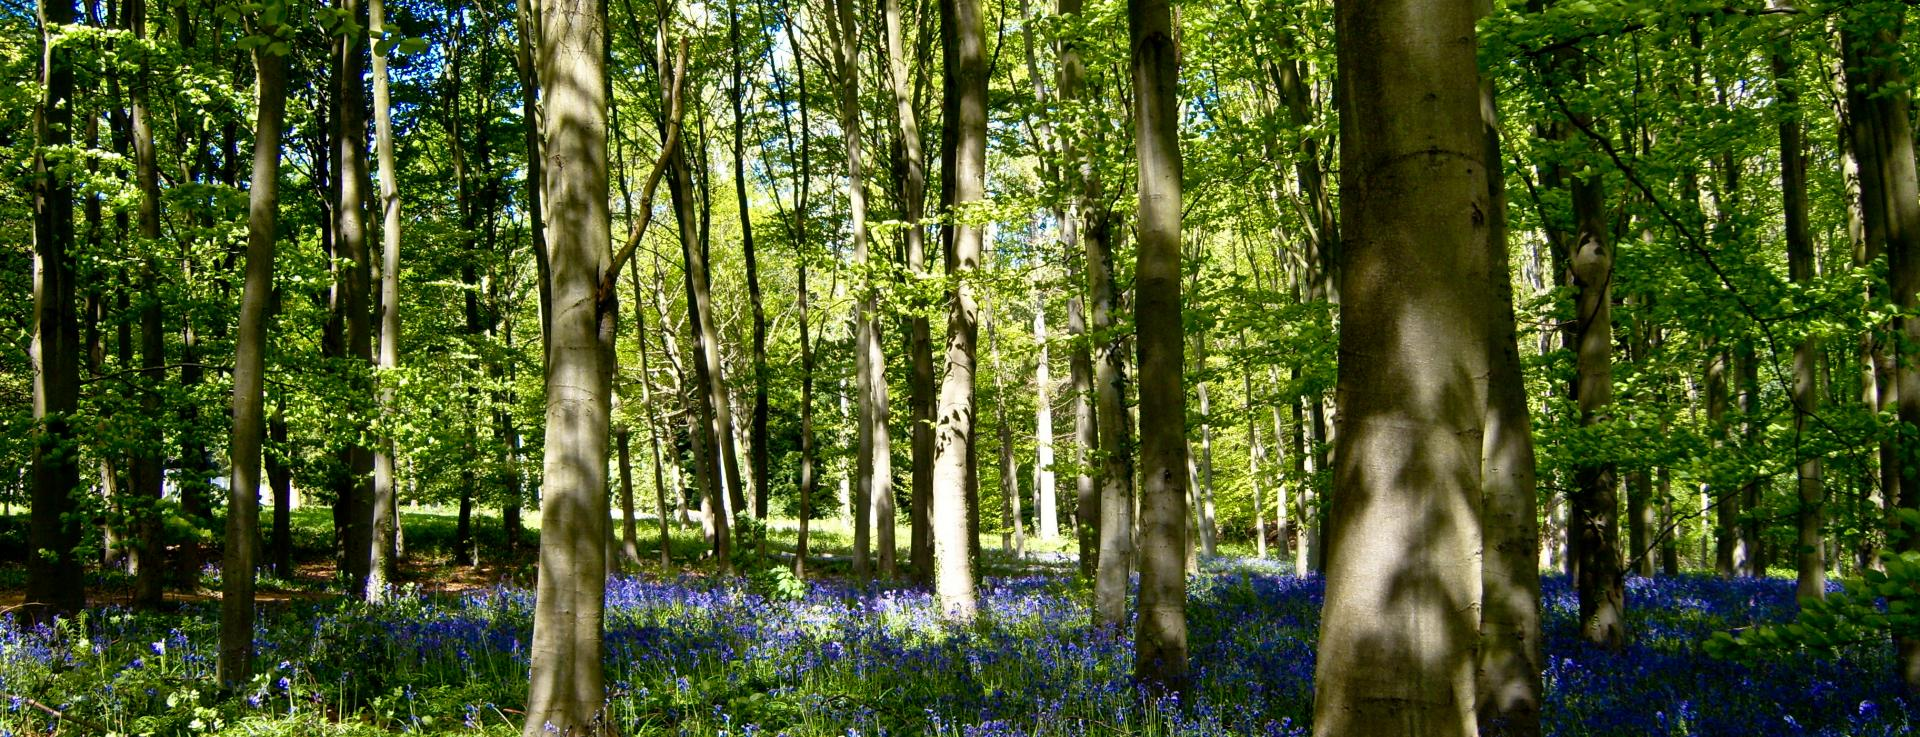 Bluebells on the Whittern Estate